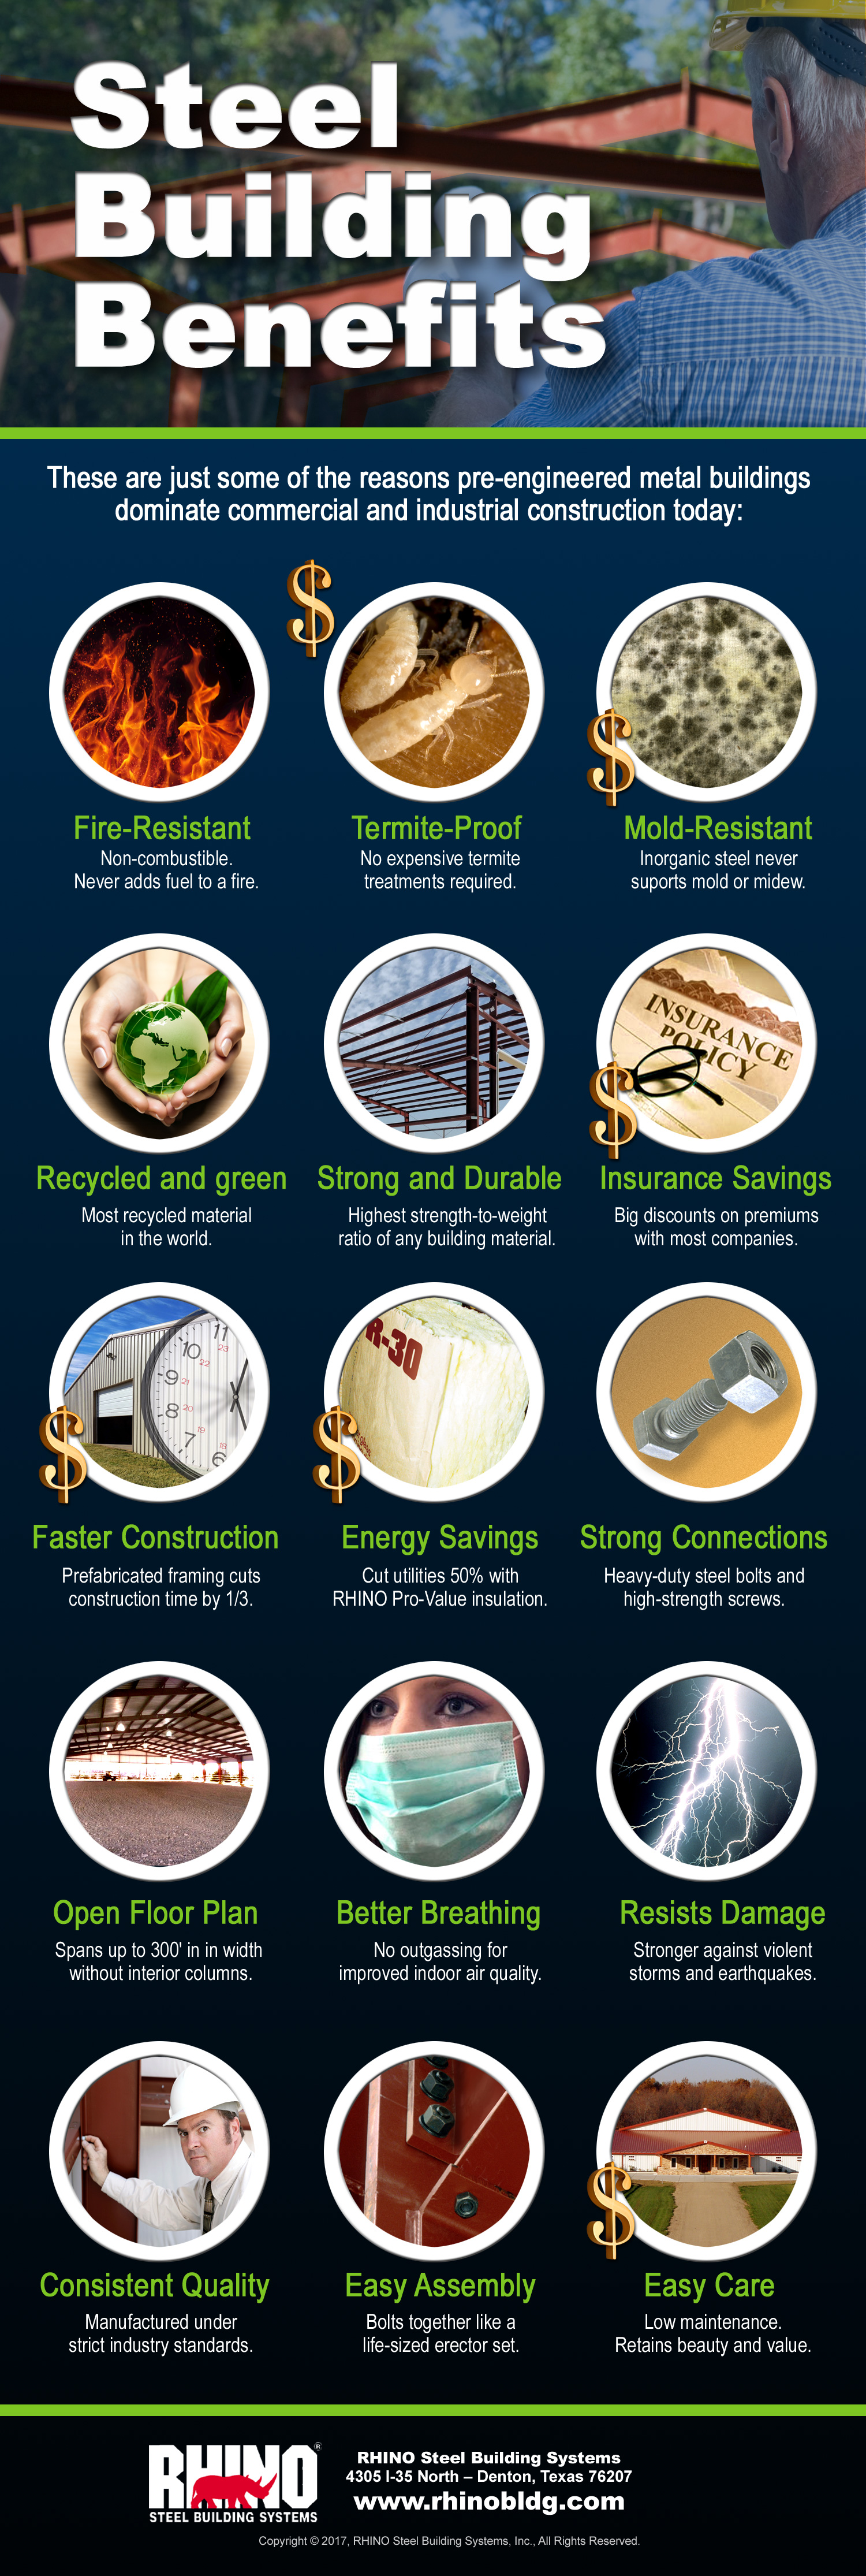 RHINO infographic depicting 15 benefits provided by metal building kits.